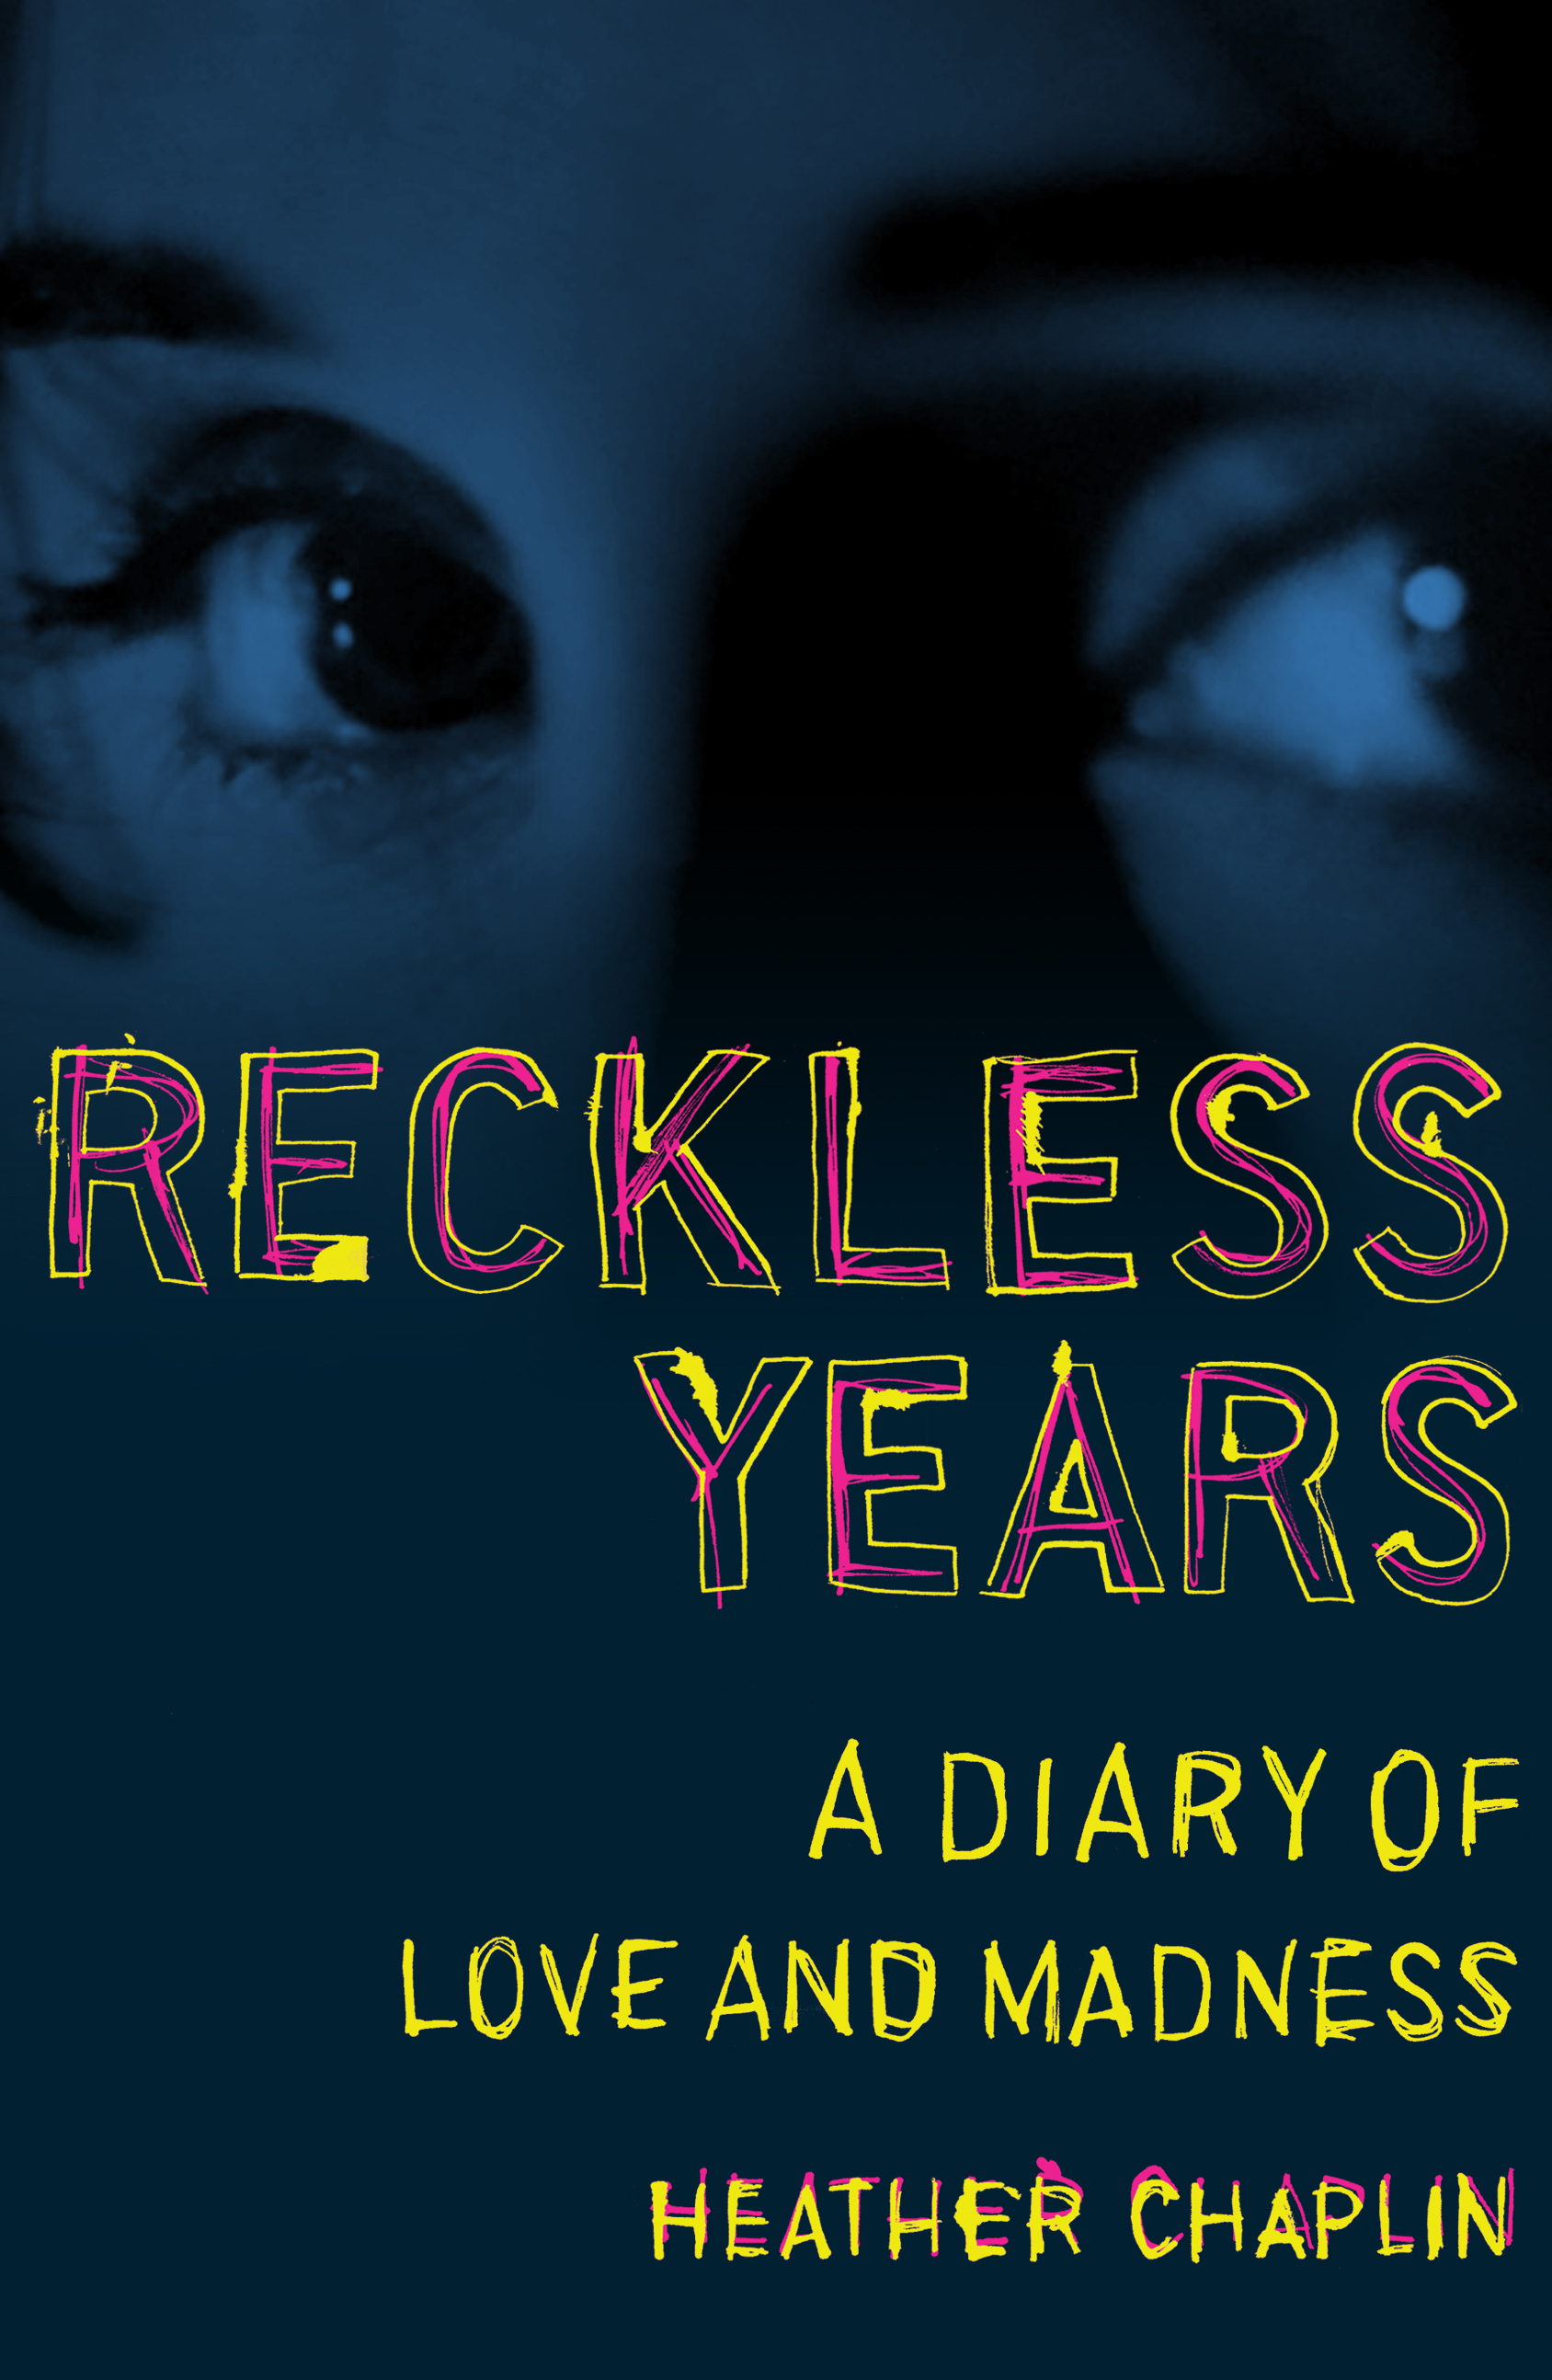 Book Launch: Reckless Years: A Diary of Love and Madness by Heather Chaplin